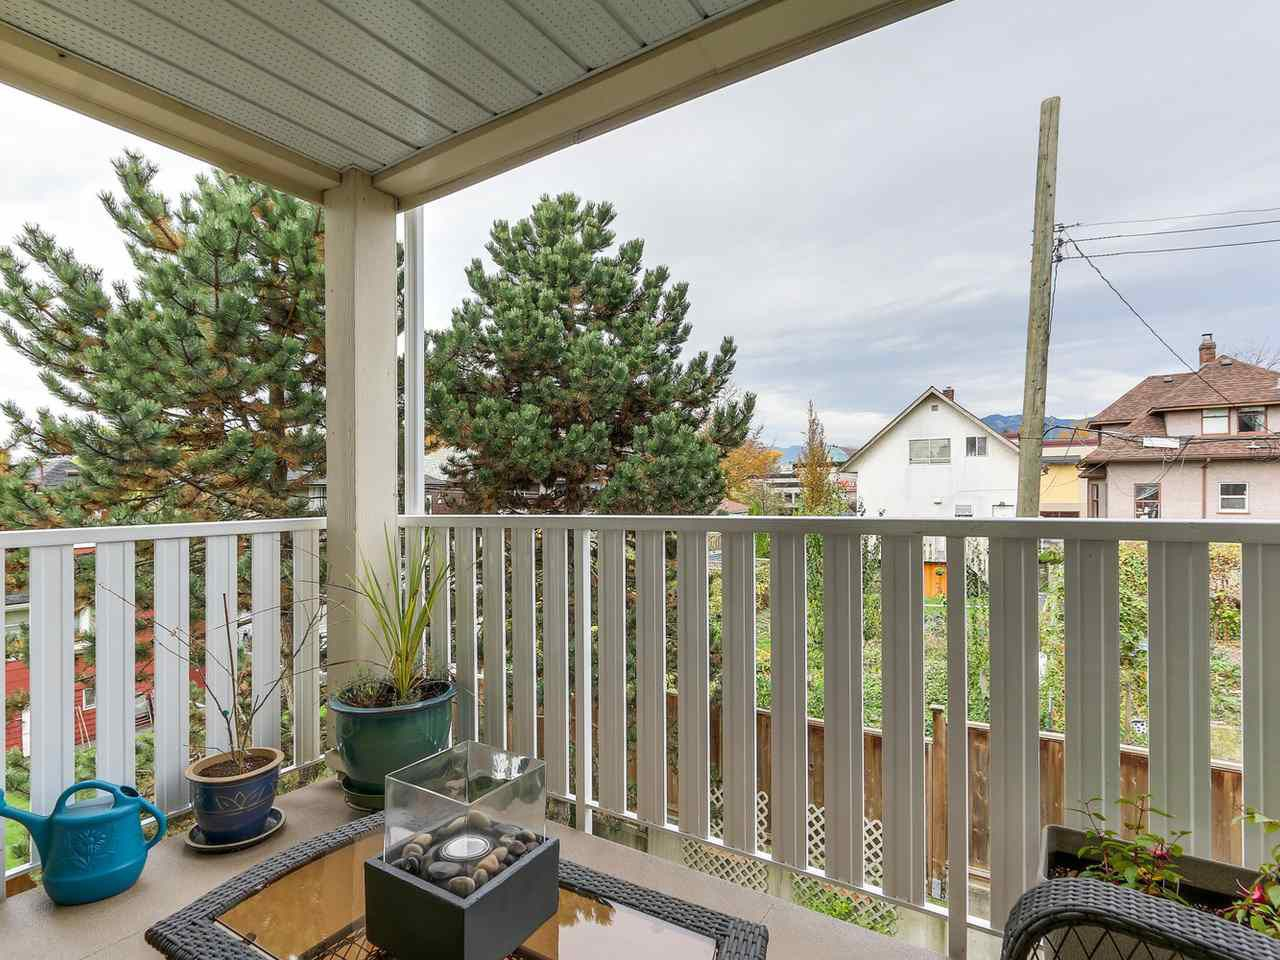 "Photo 7: Photos: 301 1623 E 2ND Avenue in Vancouver: Grandview VE Condo for sale in ""GRANDVIEW MANOR"" (Vancouver East)  : MLS®# R2122830"